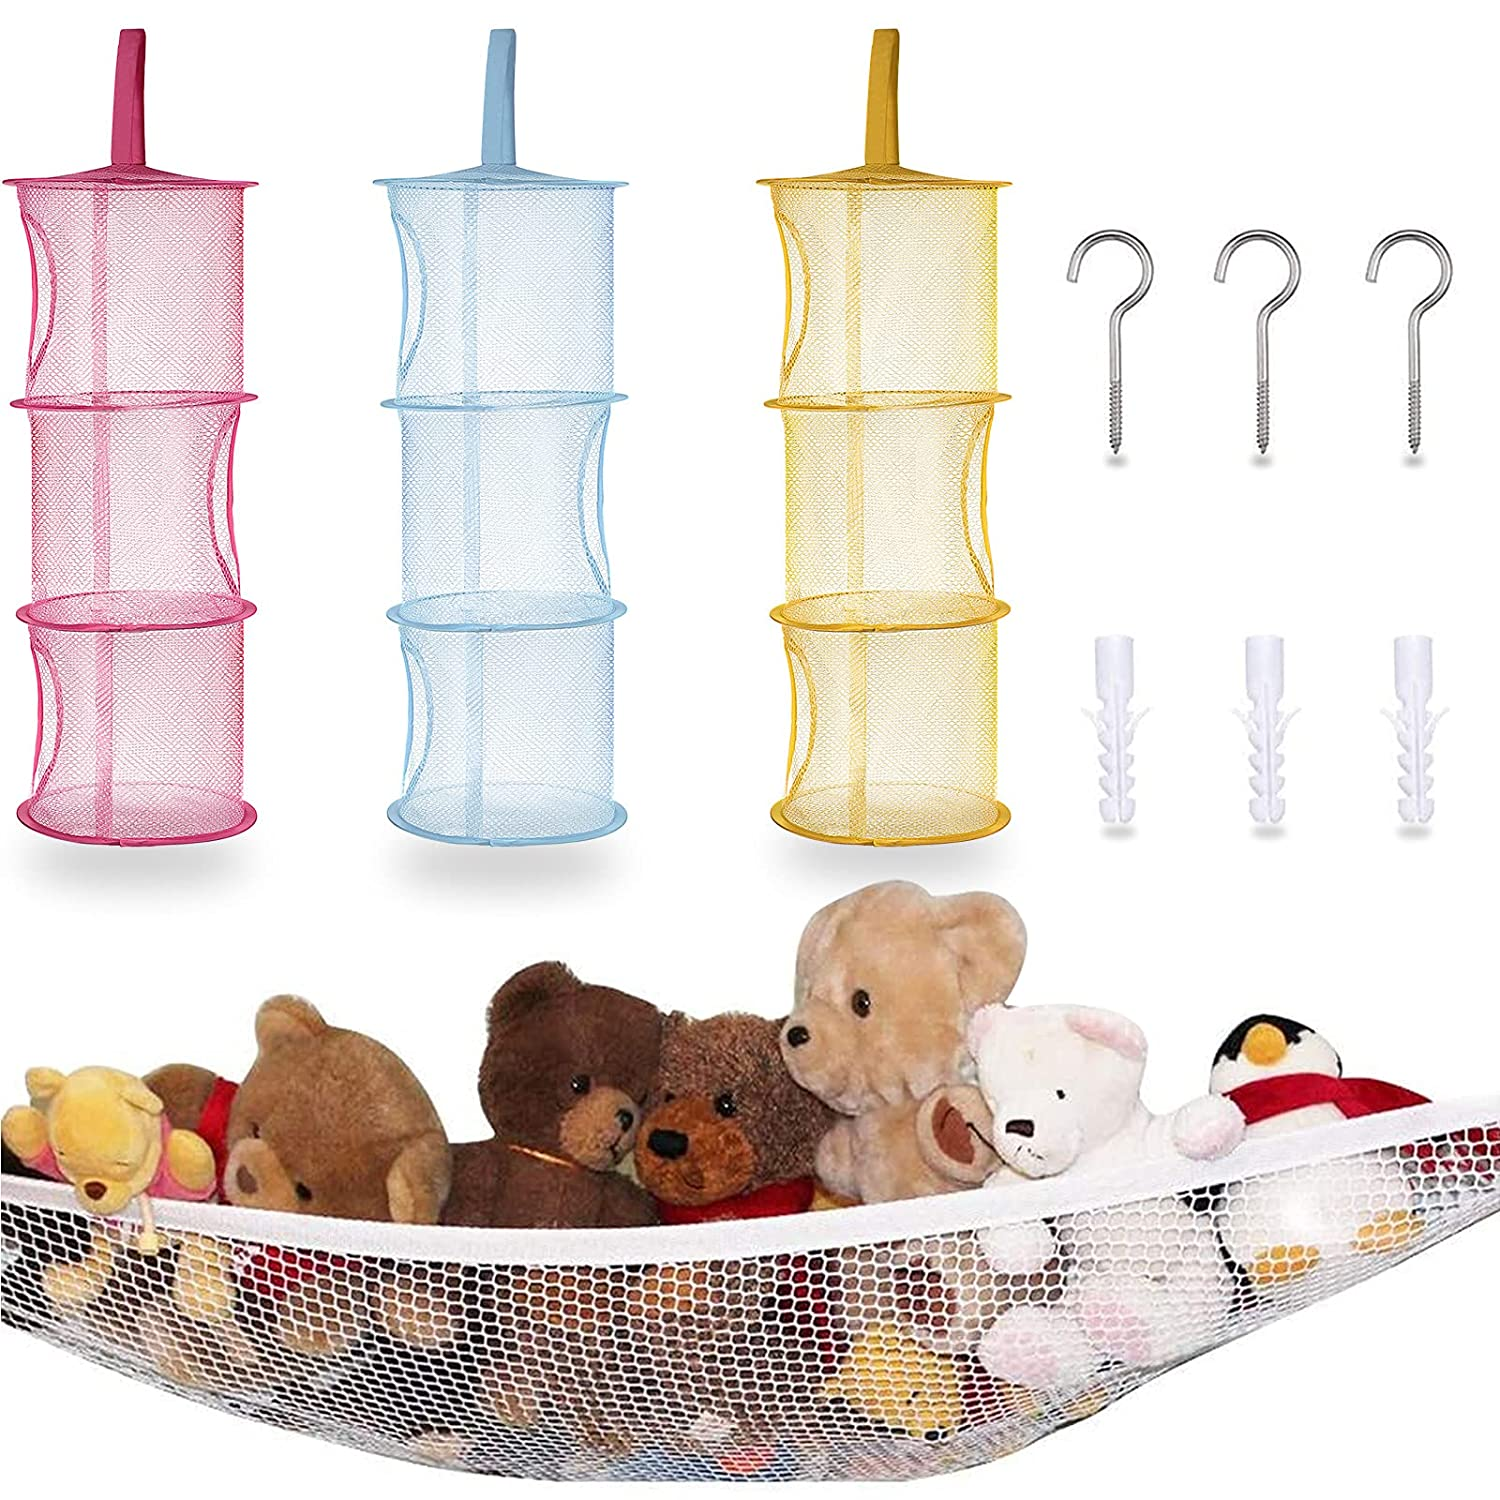 3 Pieces Hanging Mesh Storage Organizer Hanging Mesh Space Saver Bag and 1 Piece Hammock Net Organizer, Corner Mesh Organizer 3 Tier, Neatly Organize Kids' Plush Toys for Kids' Room Living Room